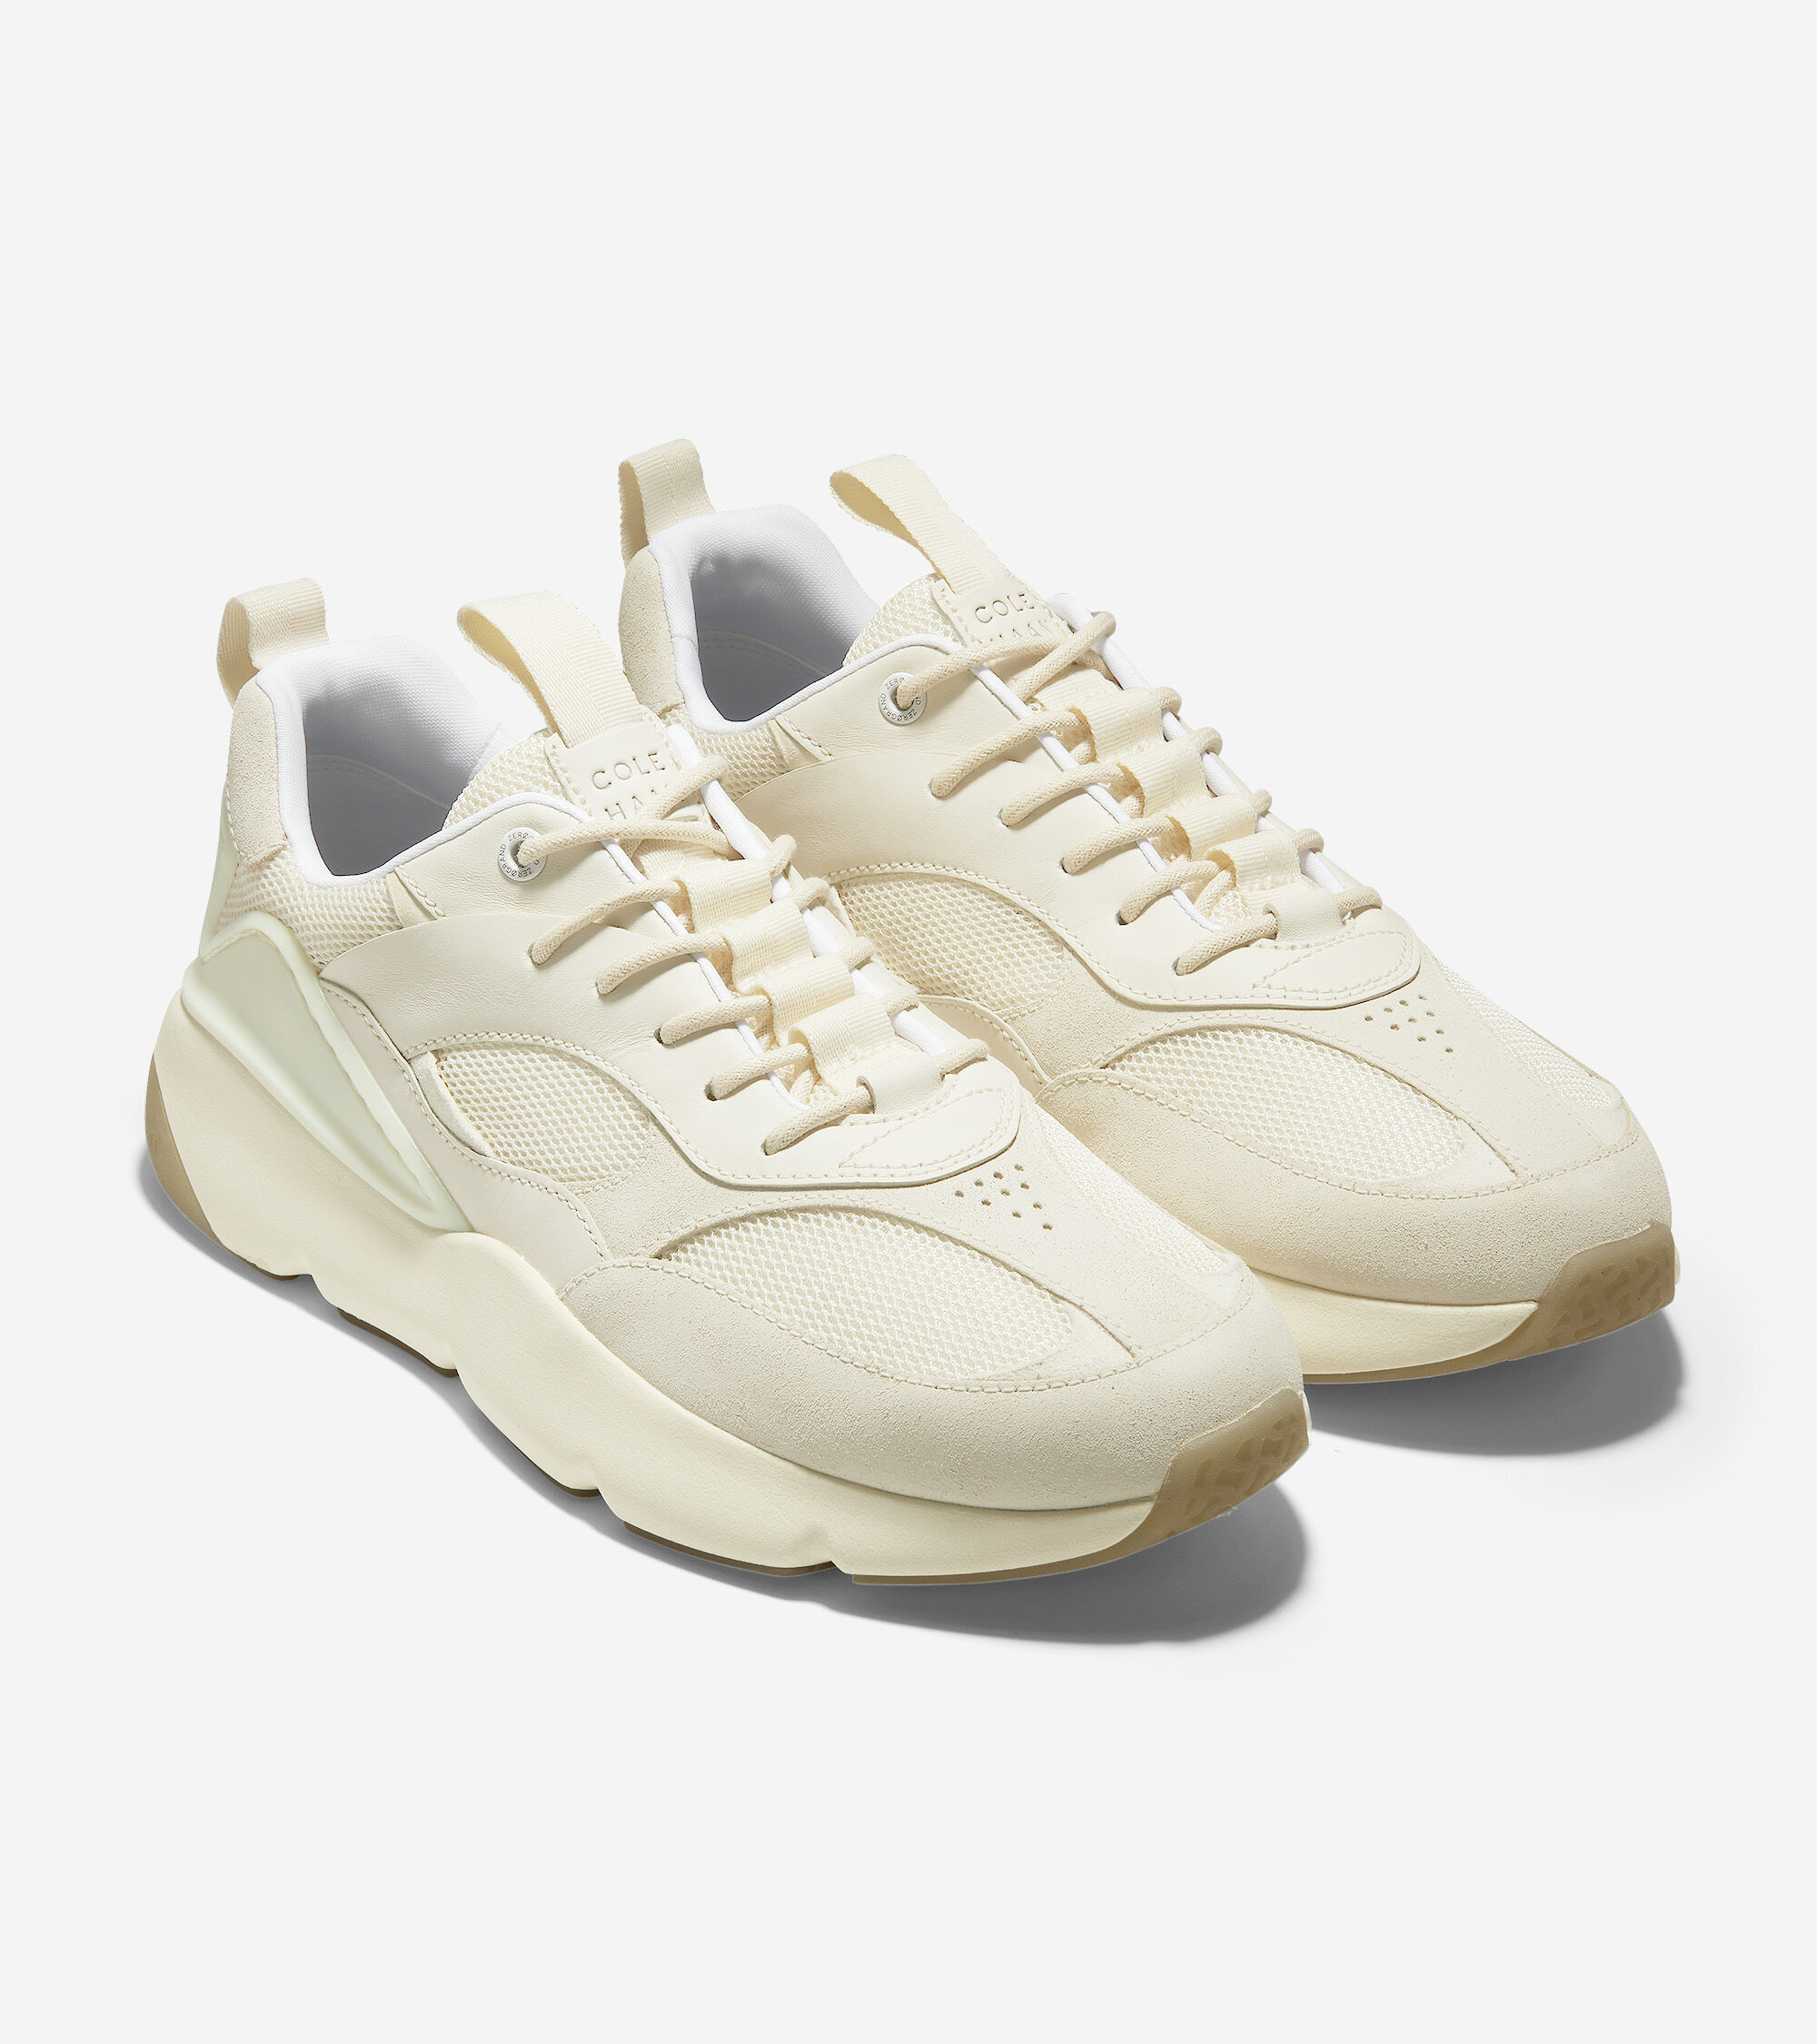 City Sneaker in White | Cole Haan